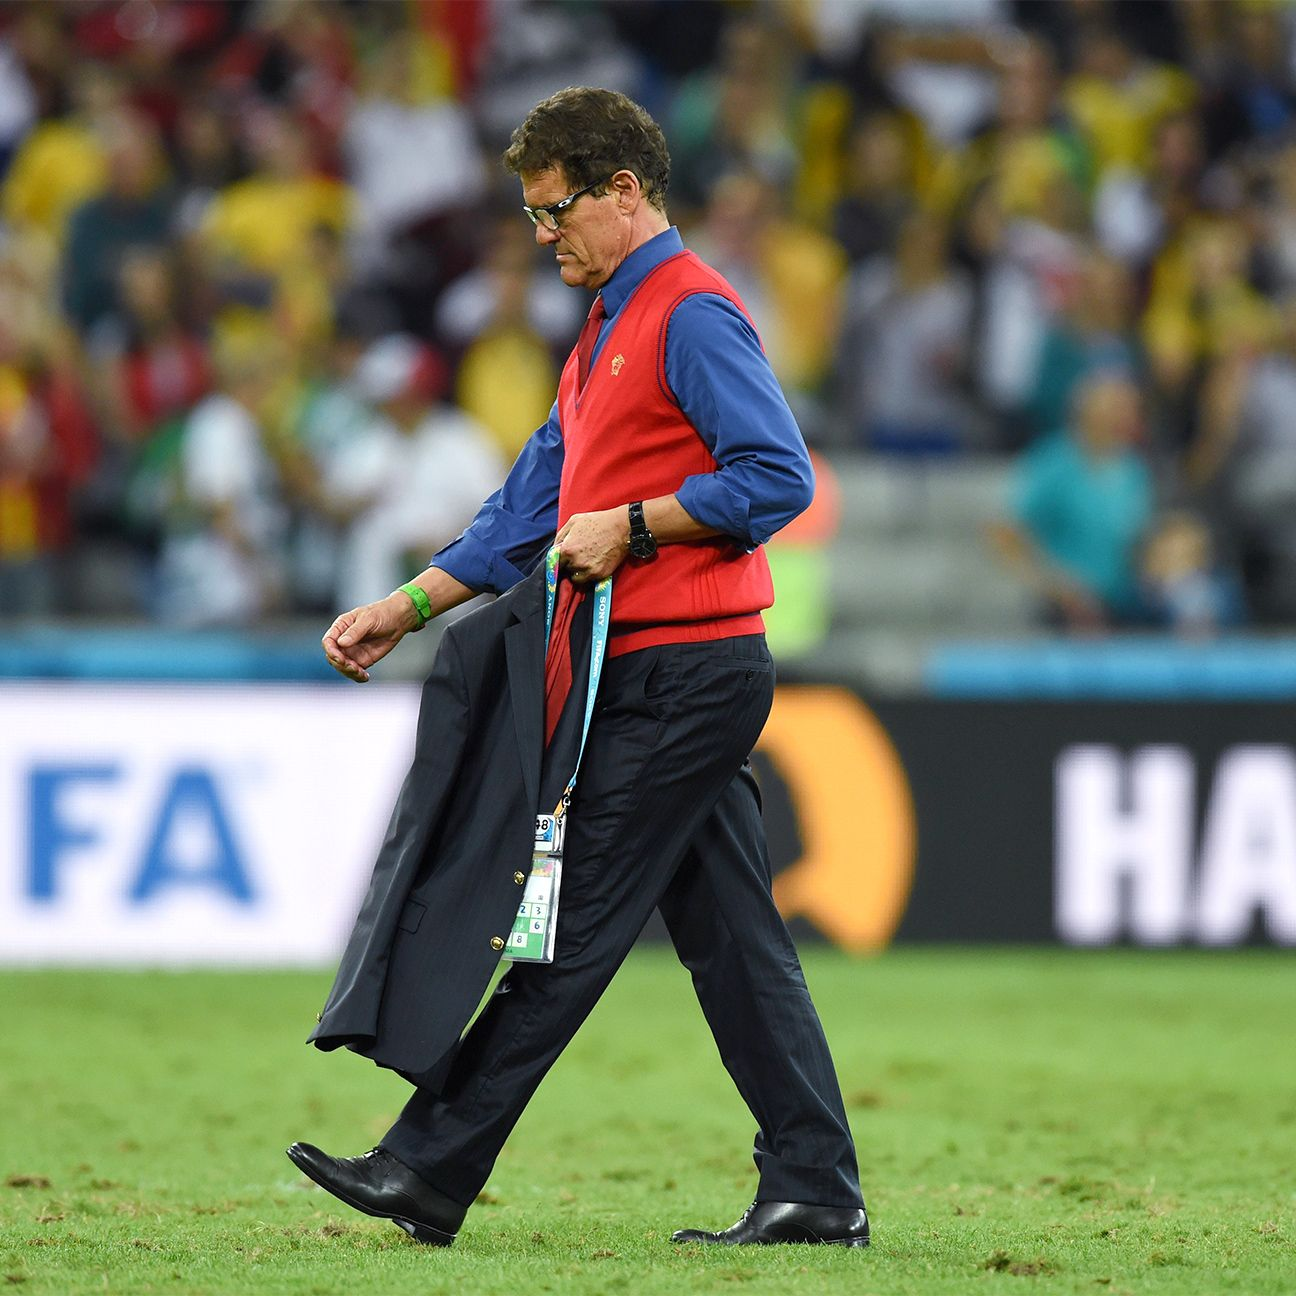 Fabio Capello's Russia failed to advance beyond the group stage at the 2014 World Cup.